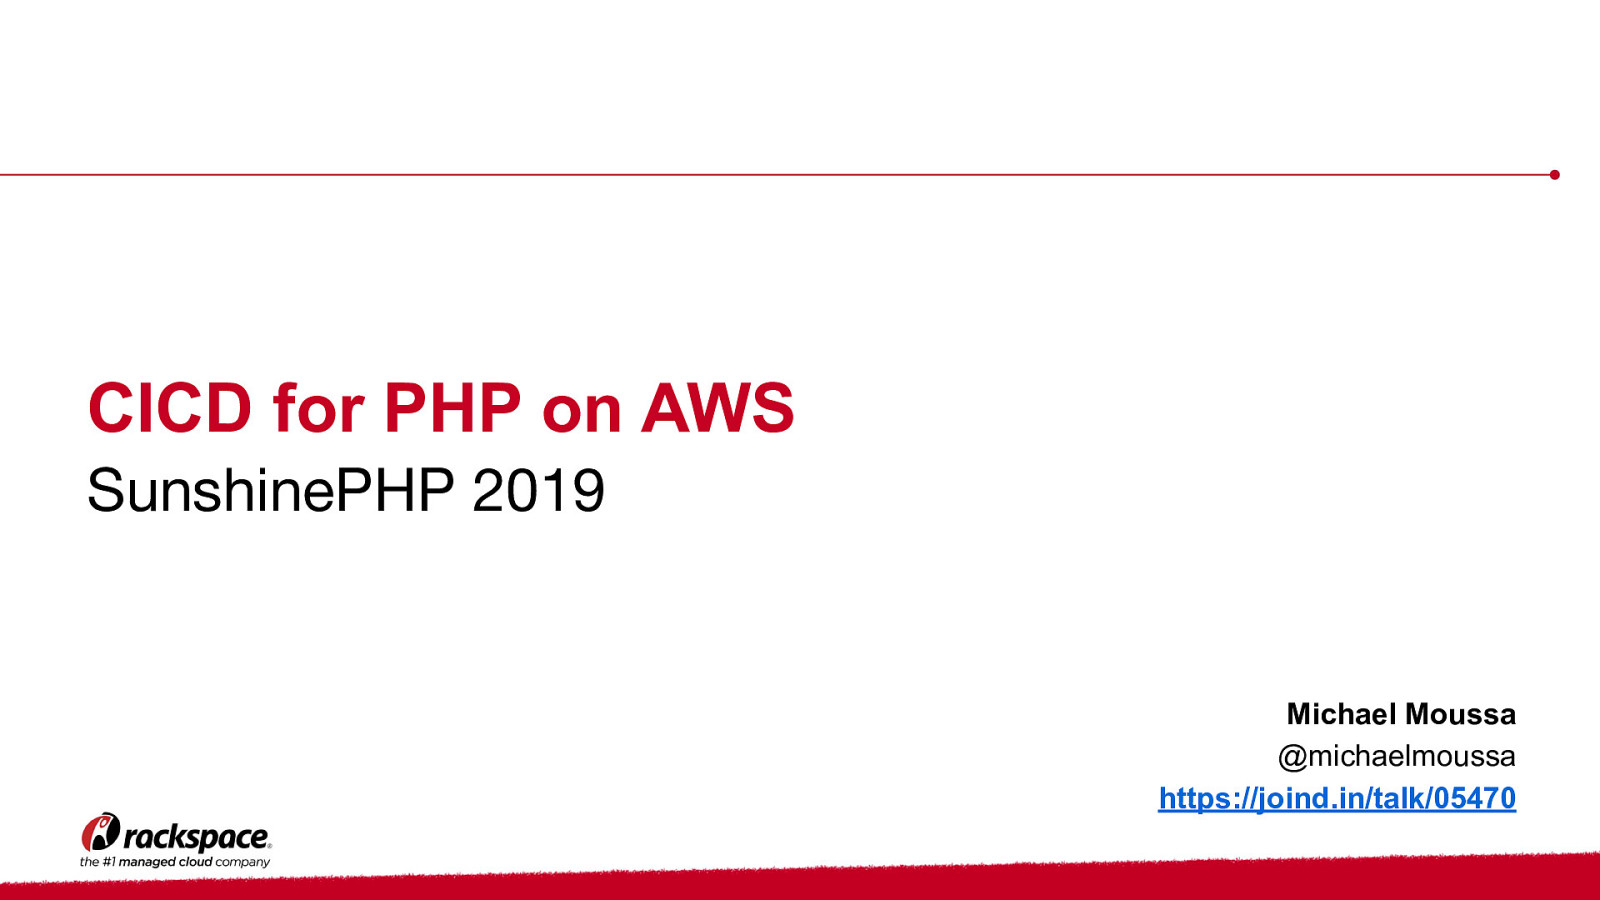 CICD for PHP on AWS